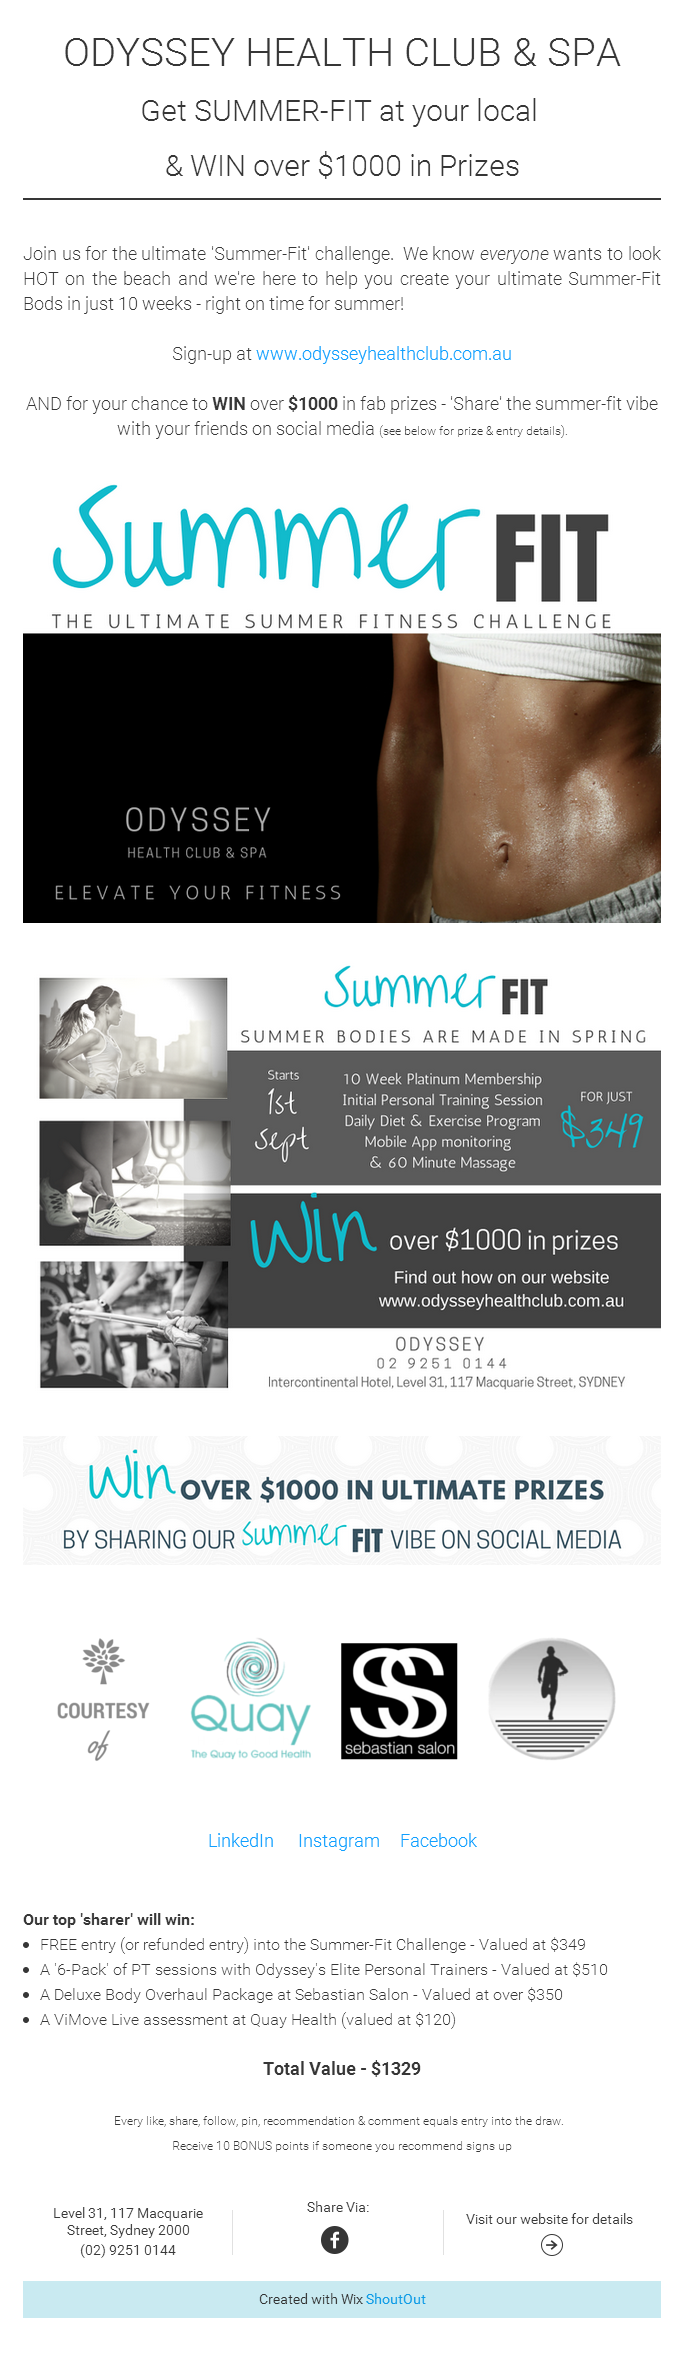 Odyssey - Summer Fit Promo Page 1